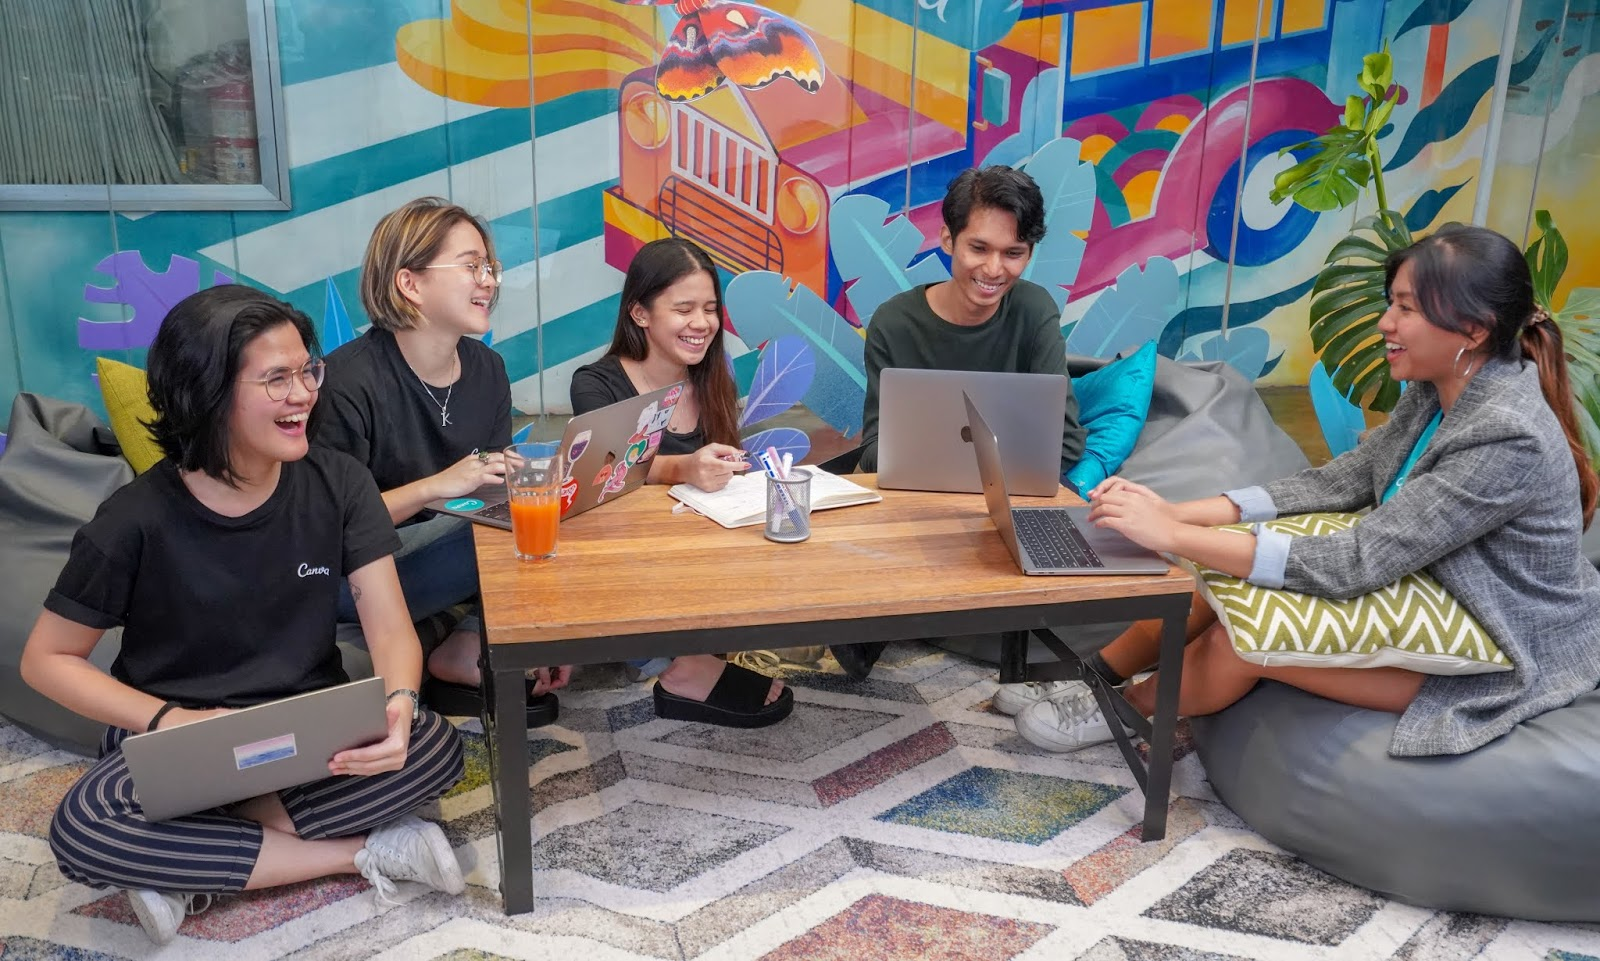 Named as one of the Best Workplaces by Great Place to Work Philippines, Canva empowers its employees to be a force for good by providing an enriching workplace.